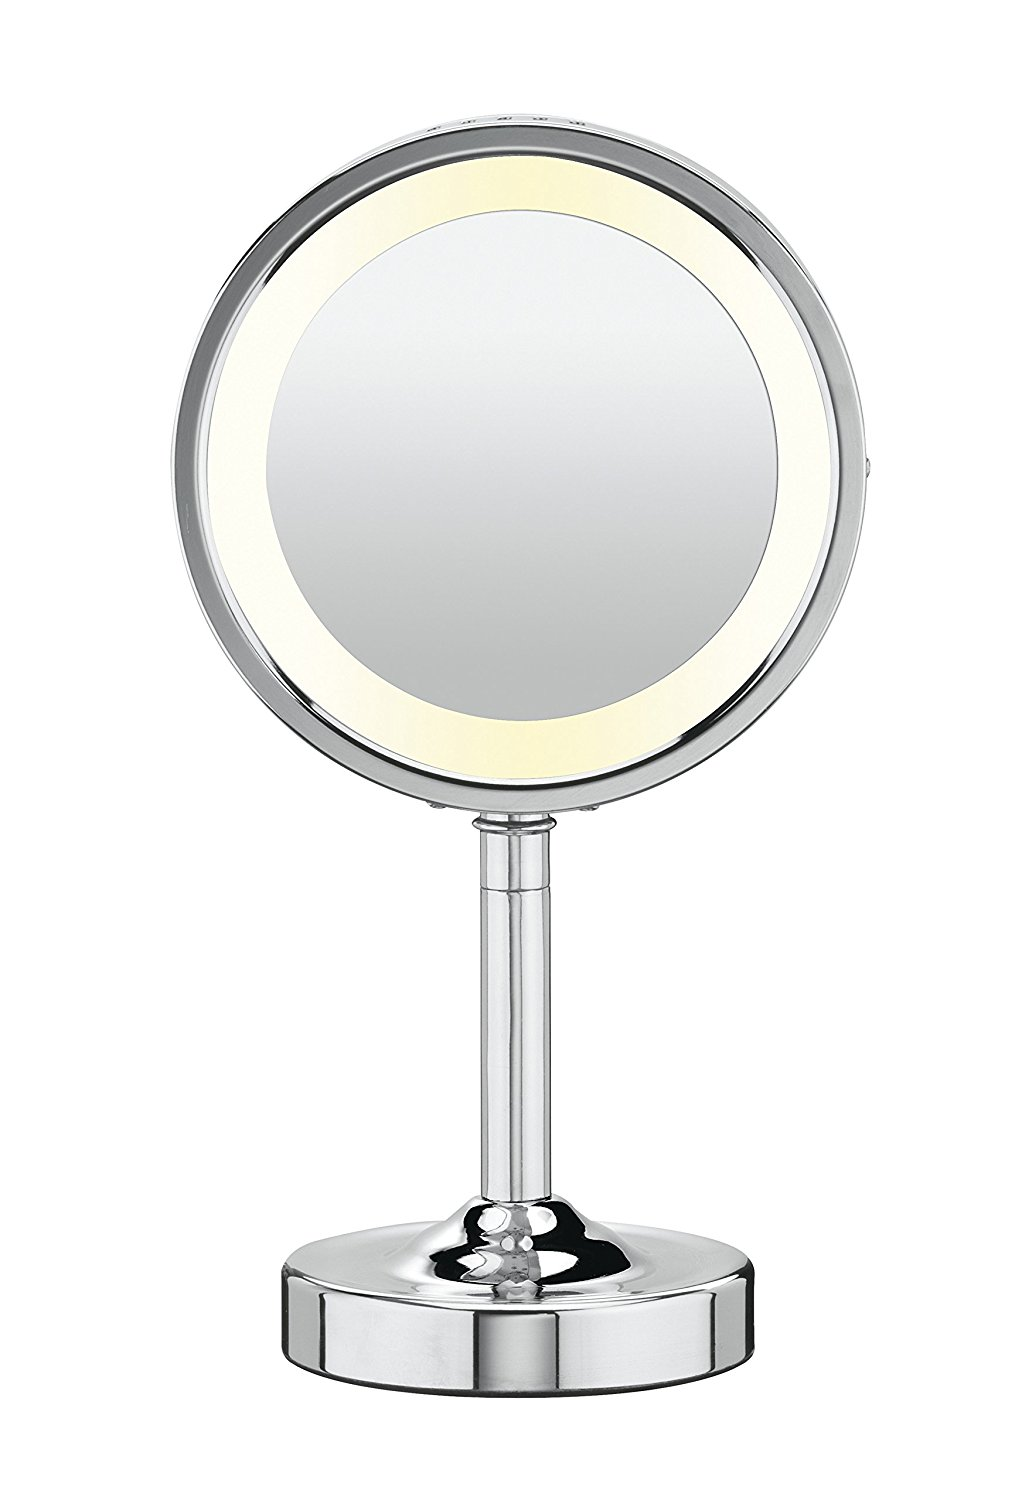 Makeup Mirror Lighted | Conair Light Bulbs for Makeup Mirror | Conair Lighted Makeup Mirror